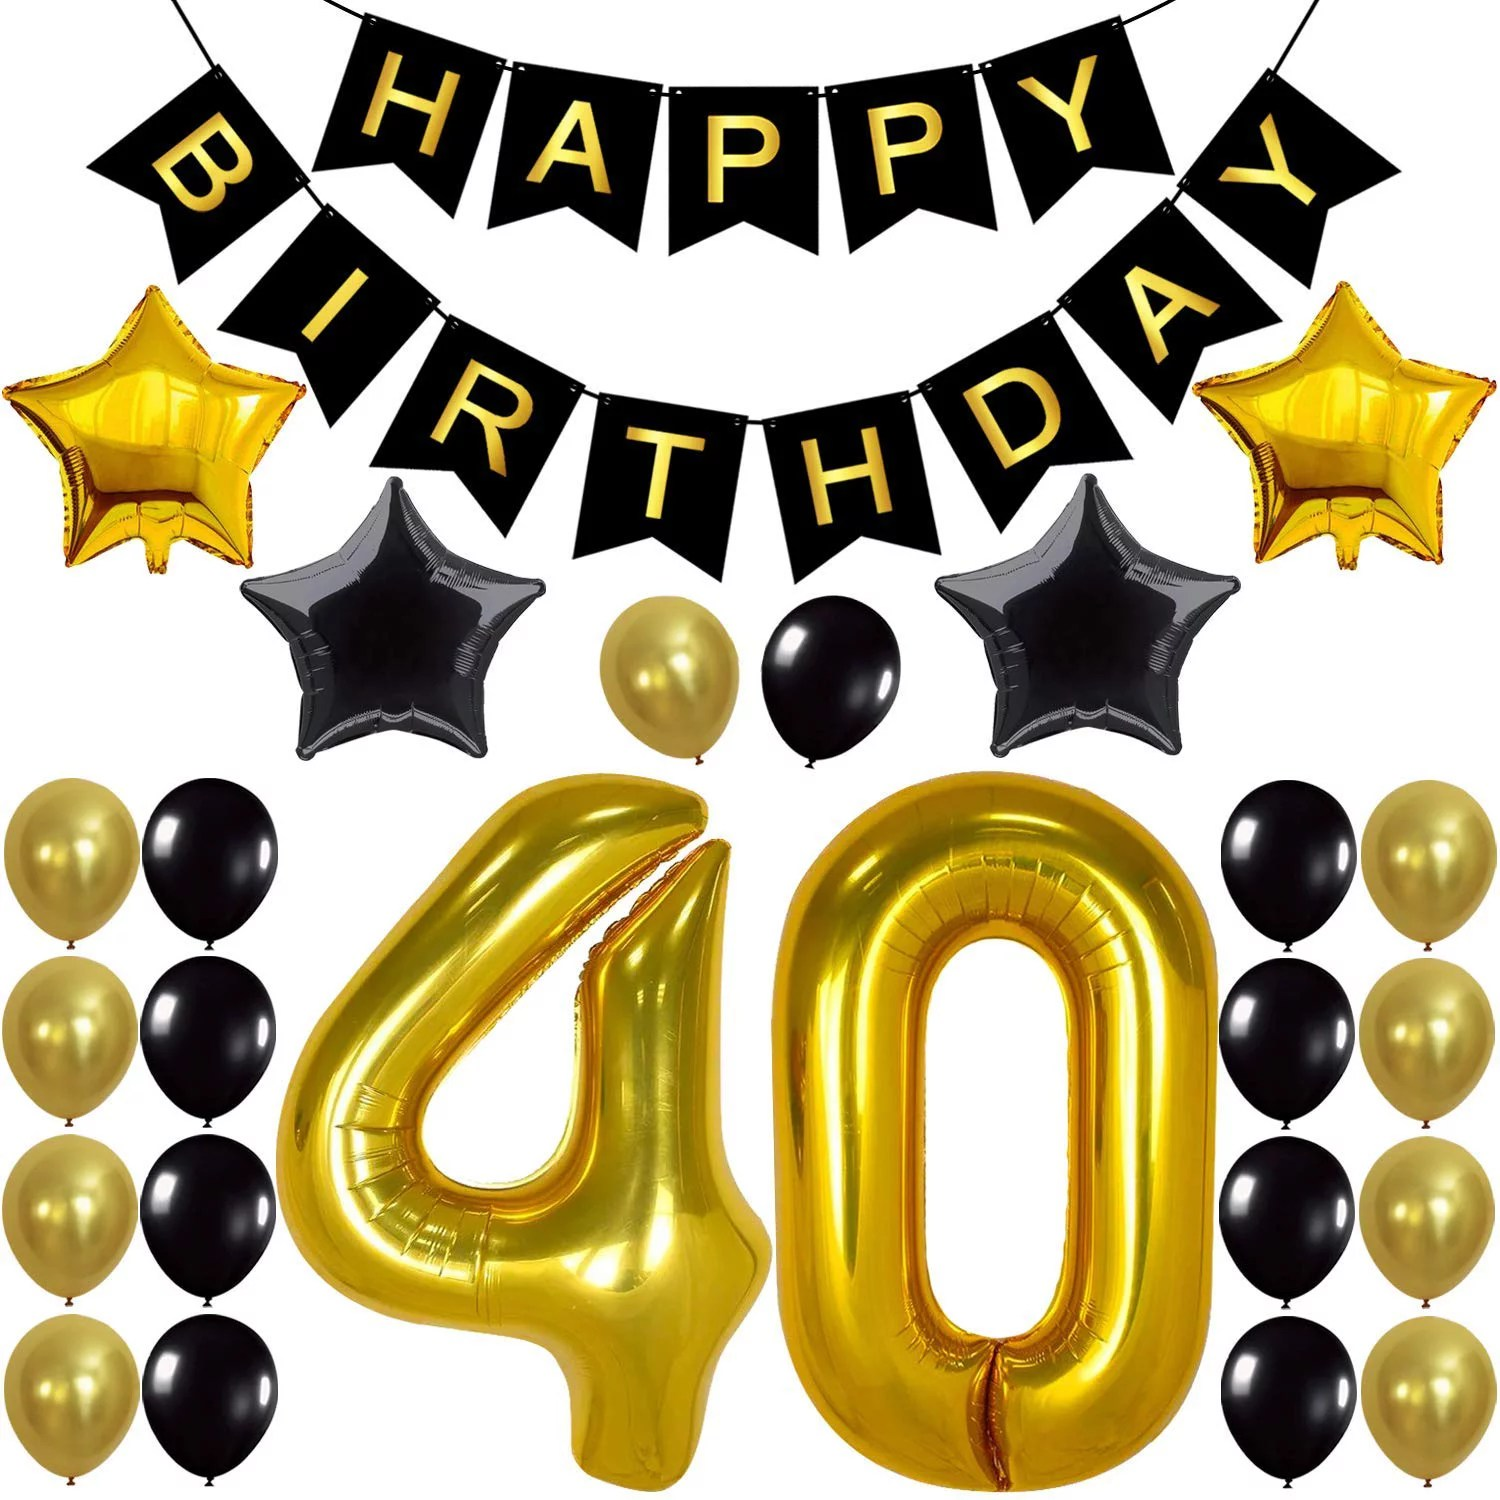 30th Birthday Party Decorations Kit Happy Birthday Banner 30th Gold Number Balloons Gold And Black Number 30 Perfect 30 Years Old Party Supplies Walmart Com Walmart Com